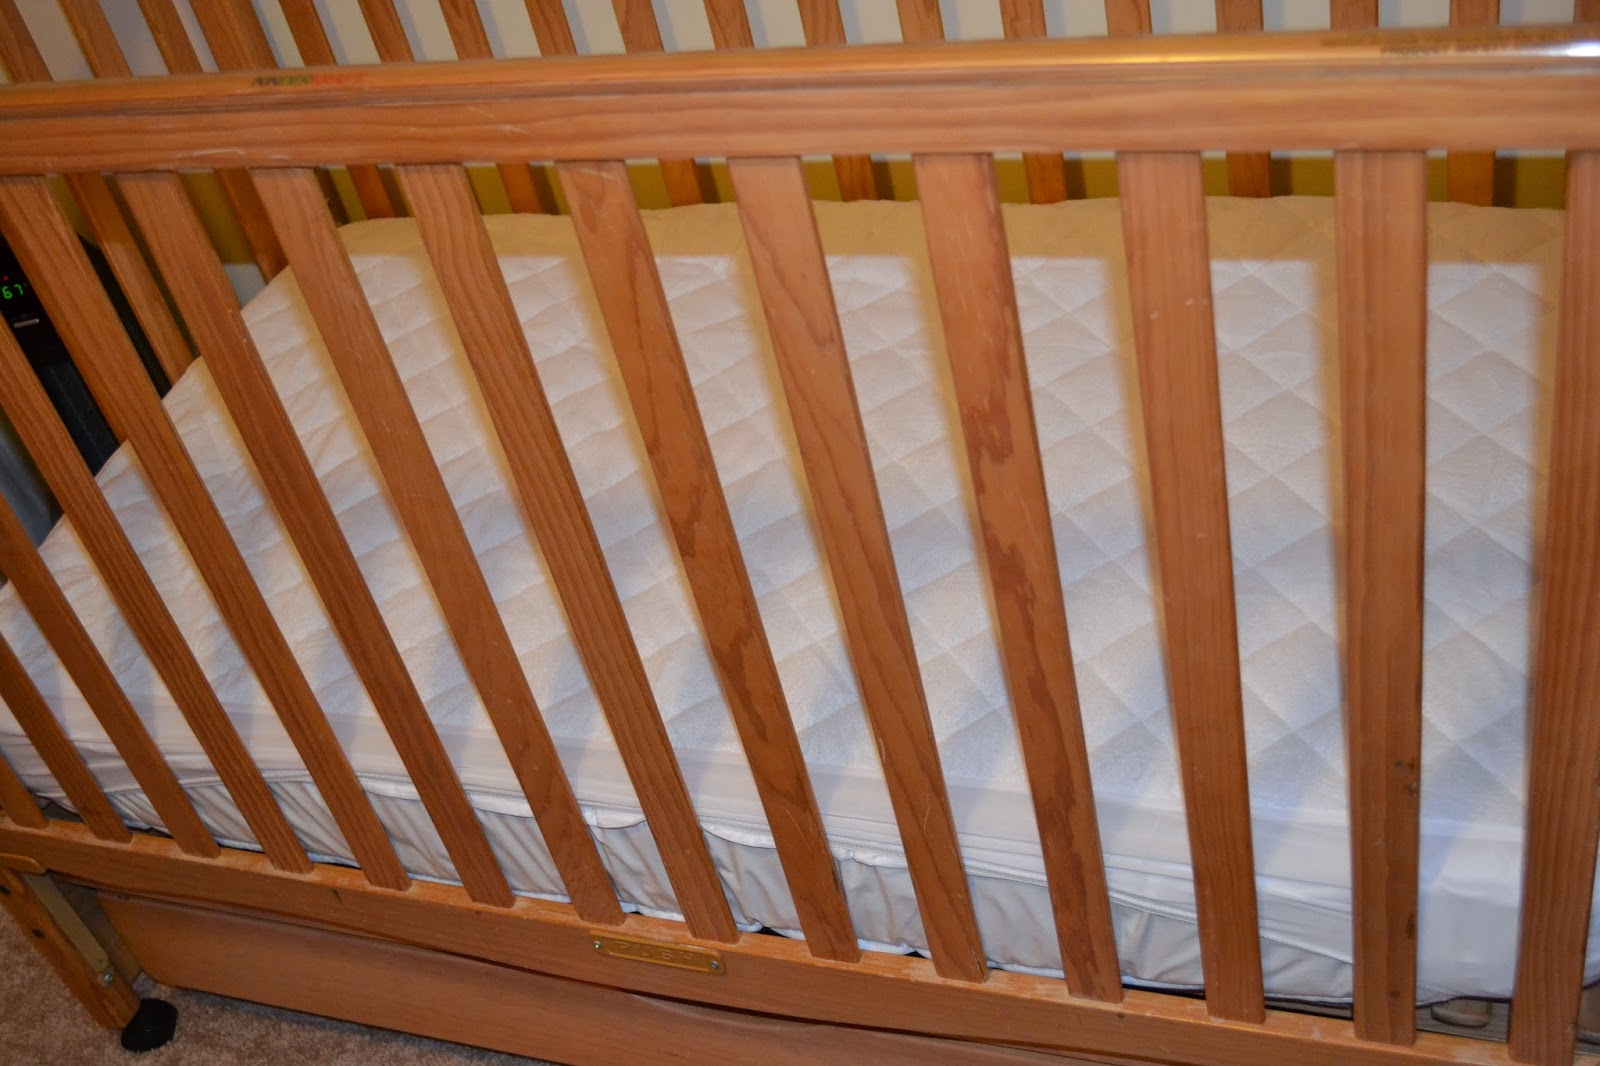 Universal Comfy Co Crib Mattress Protector Pad Review